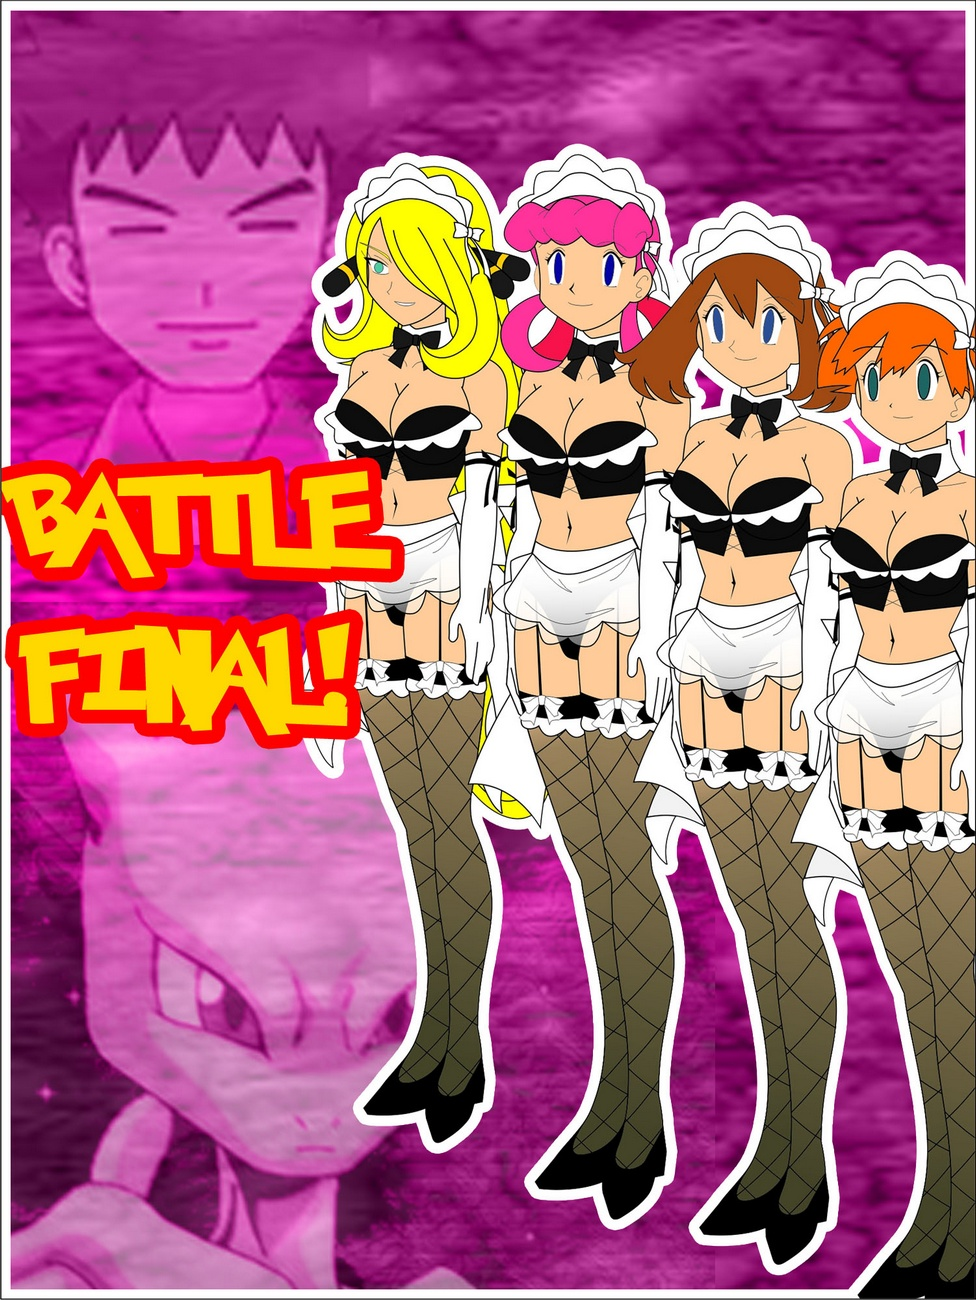 Battle Final! Pokemon Comic Porn